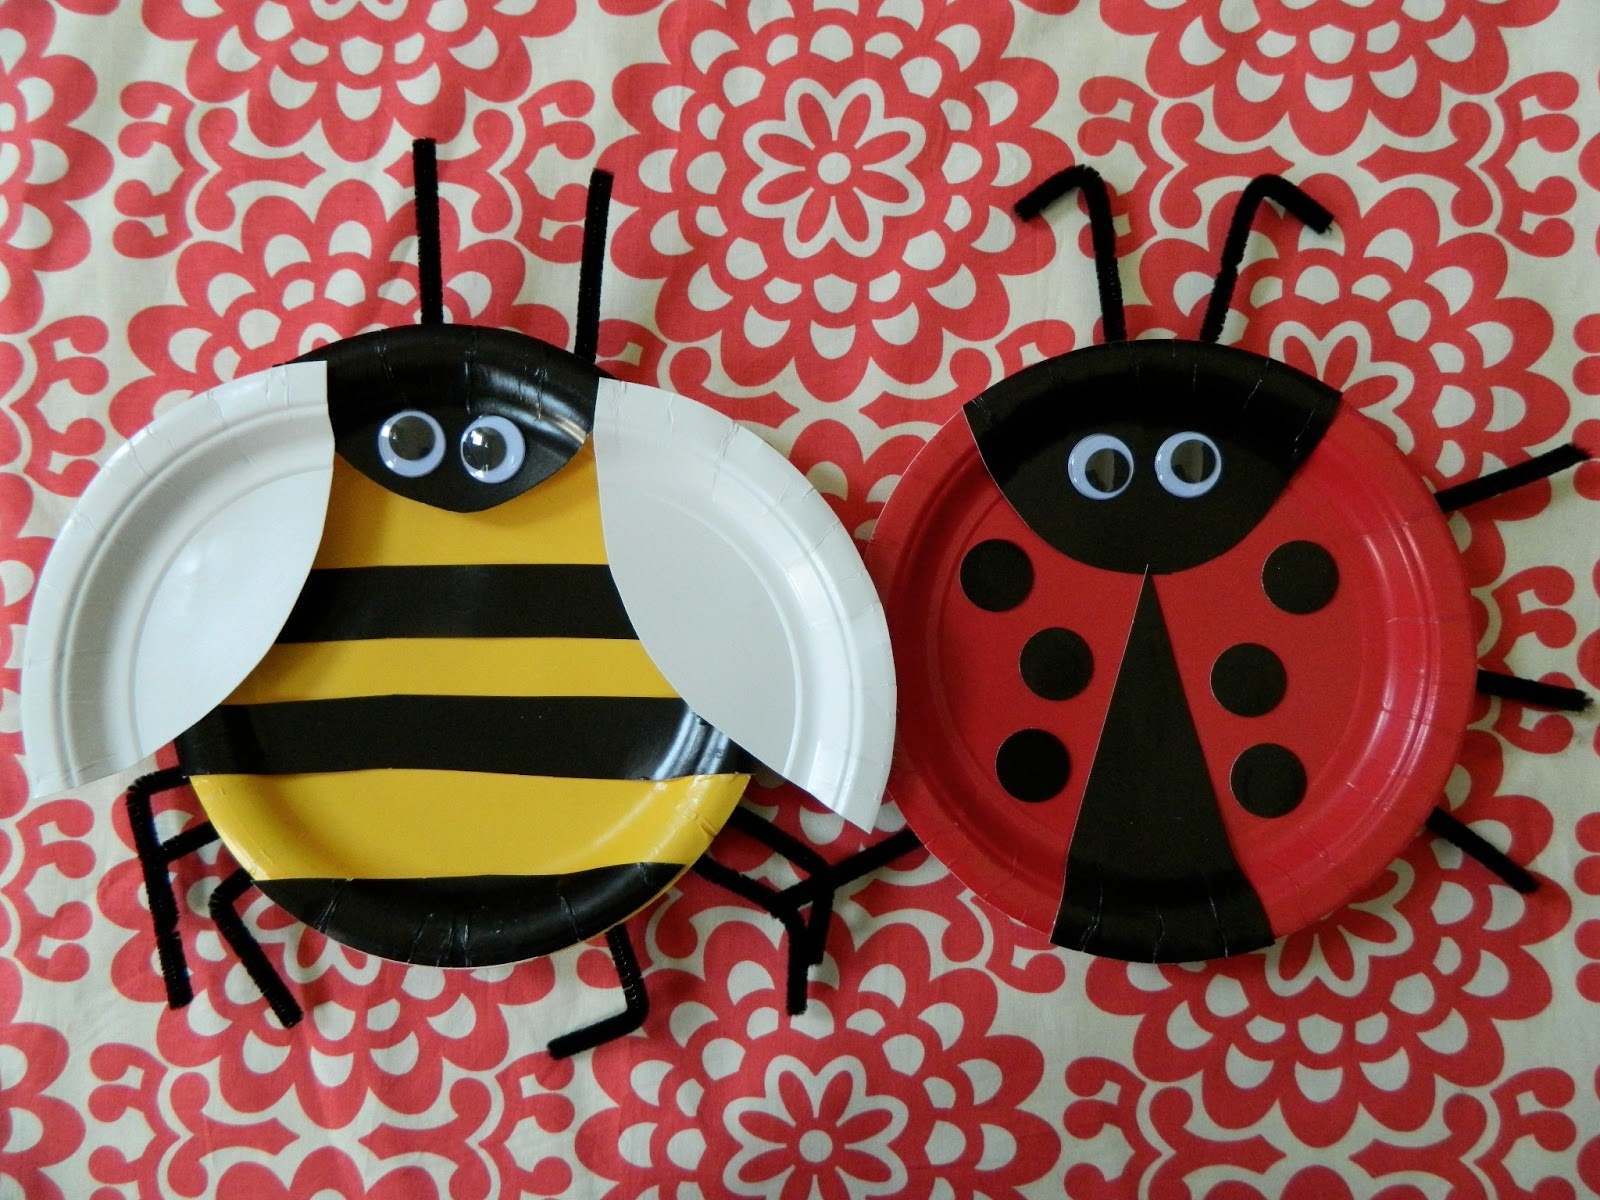 Wednesday July 17 2013 & the vintage umbrella: paper plate bugs